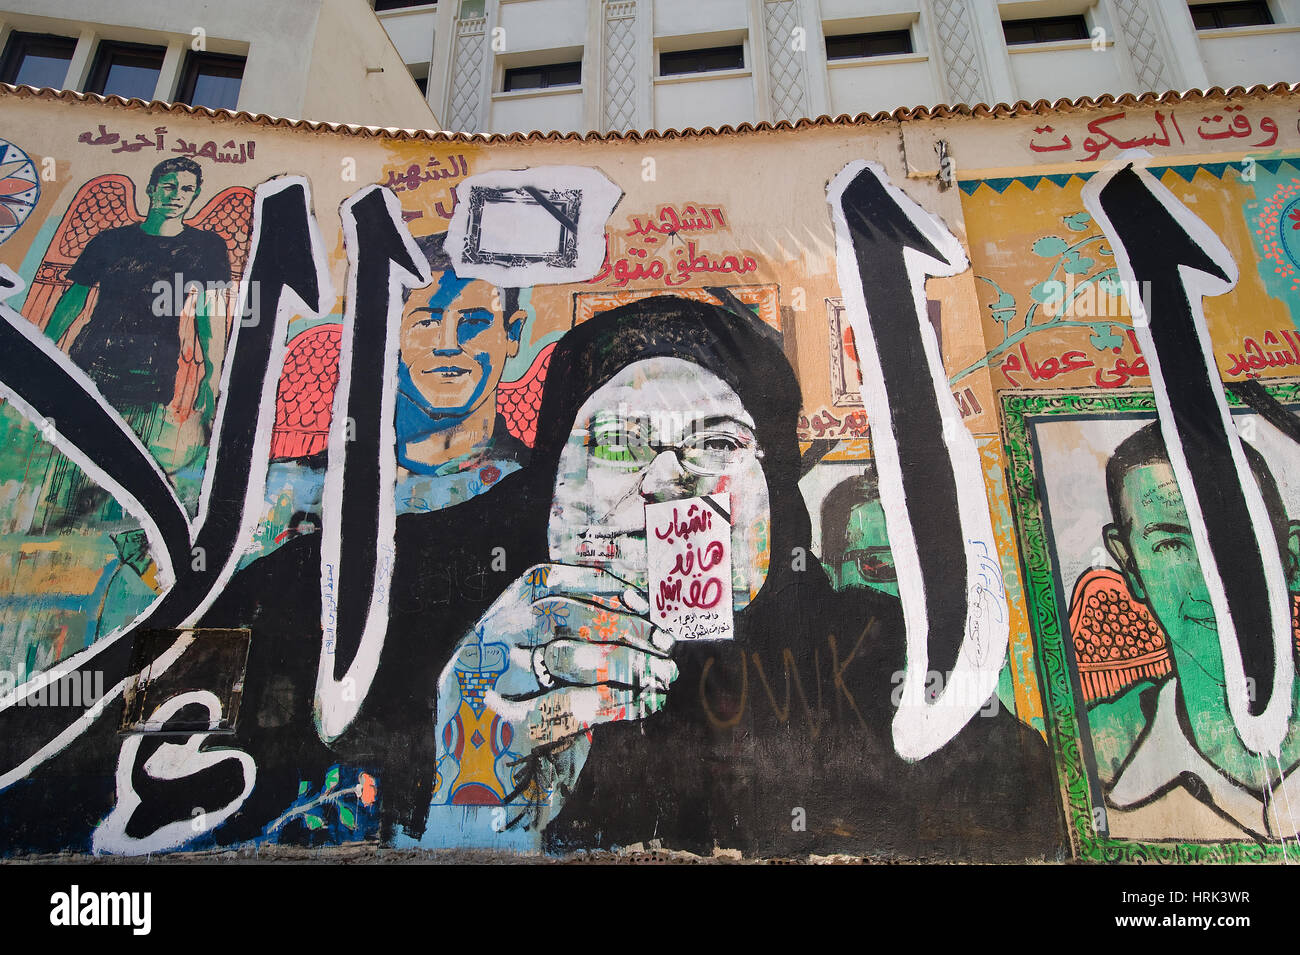 EGYPT, CAIRO: People conquer the streets and public space in general, more and more graffitis and murals appear. Stock Photo